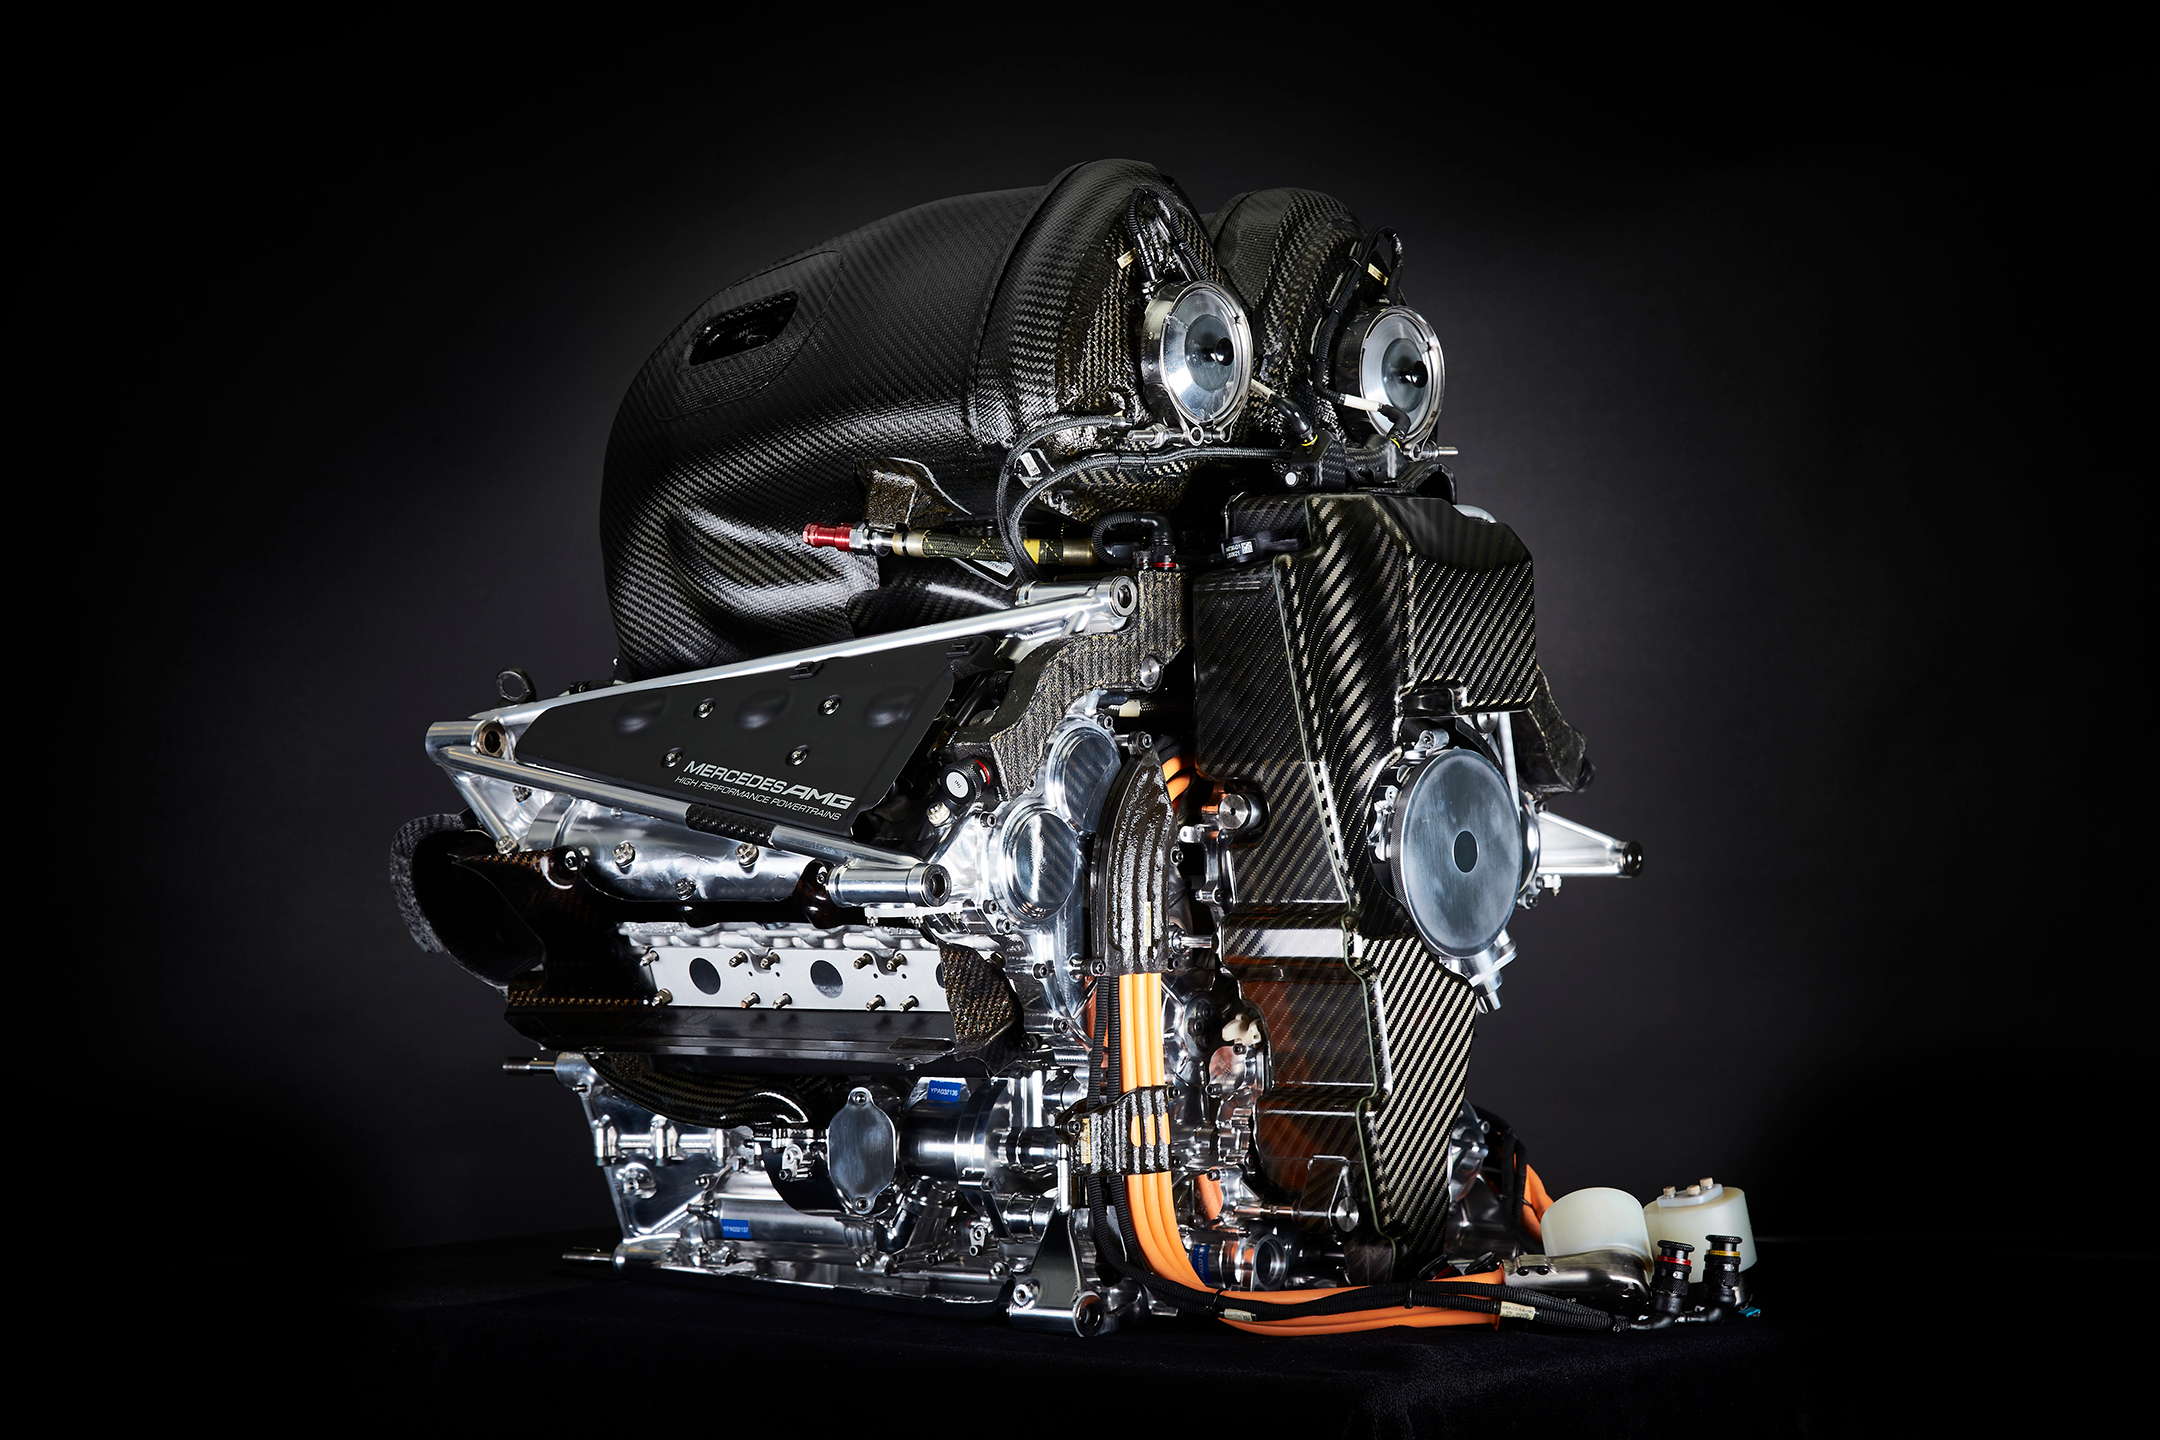 F1 - Mercedes-AMG - W11 - 2020 - engine Power Unit - HPP - 1.6L V6 turbo hybrid